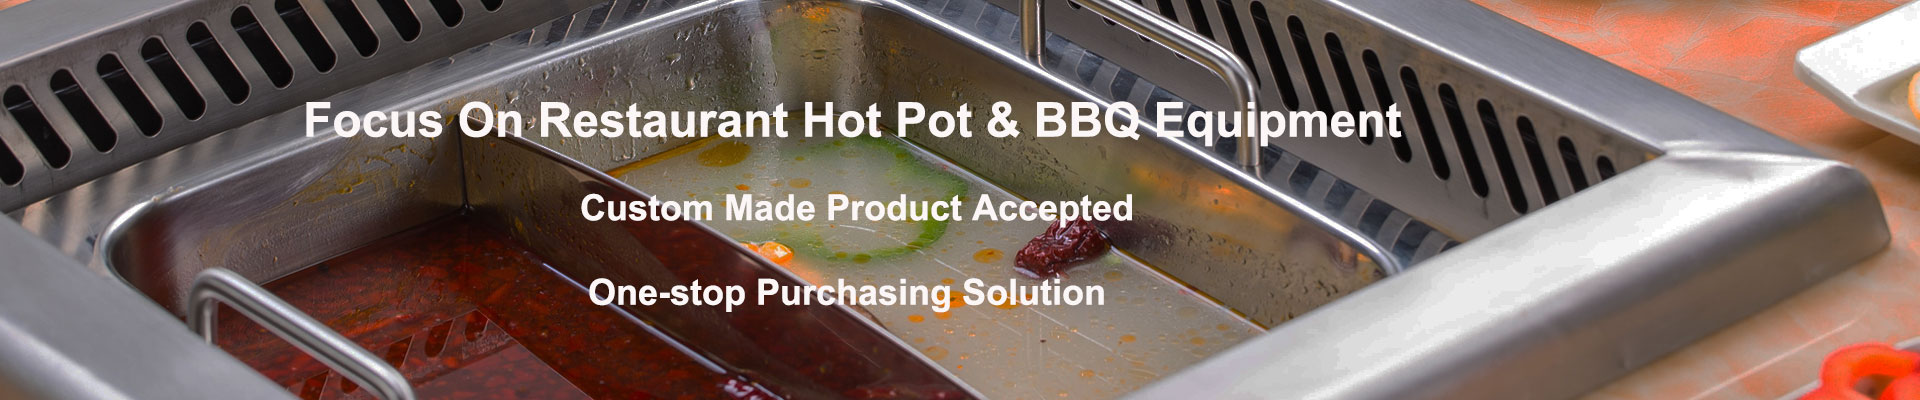 Focus On Restaurant Hot Pot & BBQ Equipment